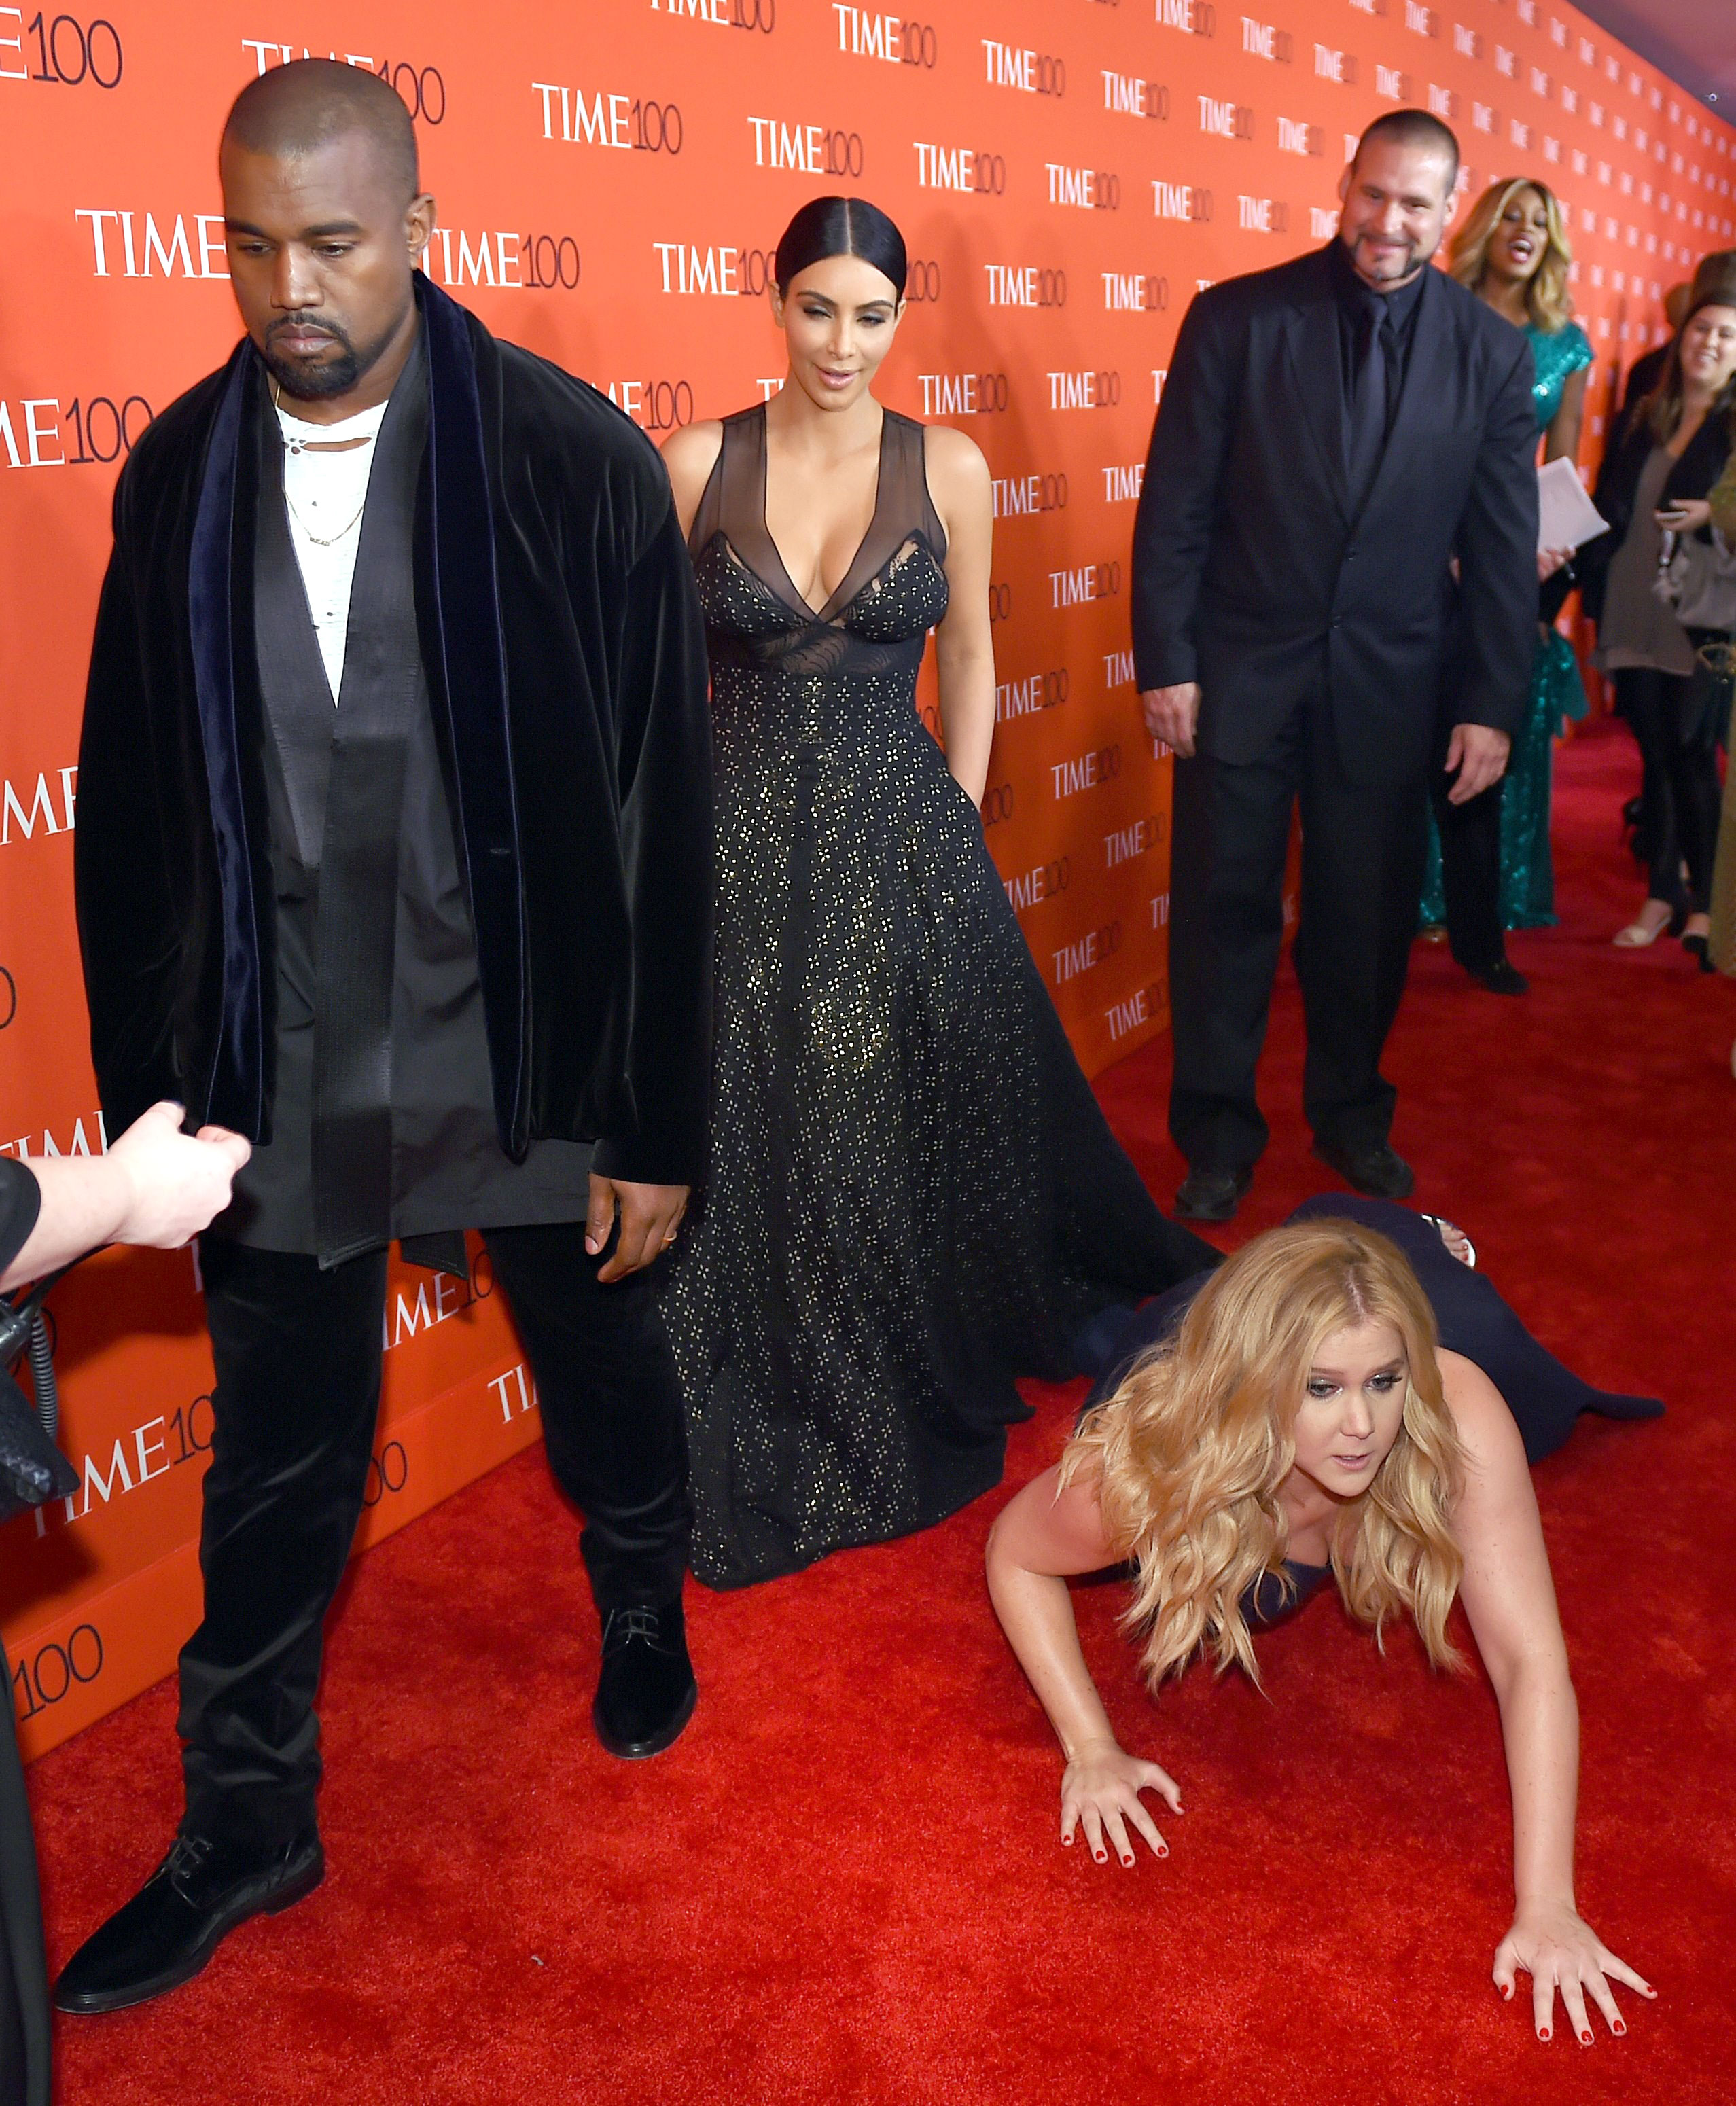 Revisit the 5 Most Kimye Things the Power Couple Have Done Ignoring Amy Schumer laying on the red carpet at 2015 Time 100 Gala - Amy Schumer purposely threw herself on the ground at the Time 100 Gala in April 2015 in front of honorees Kardashian and West. Their reaction?